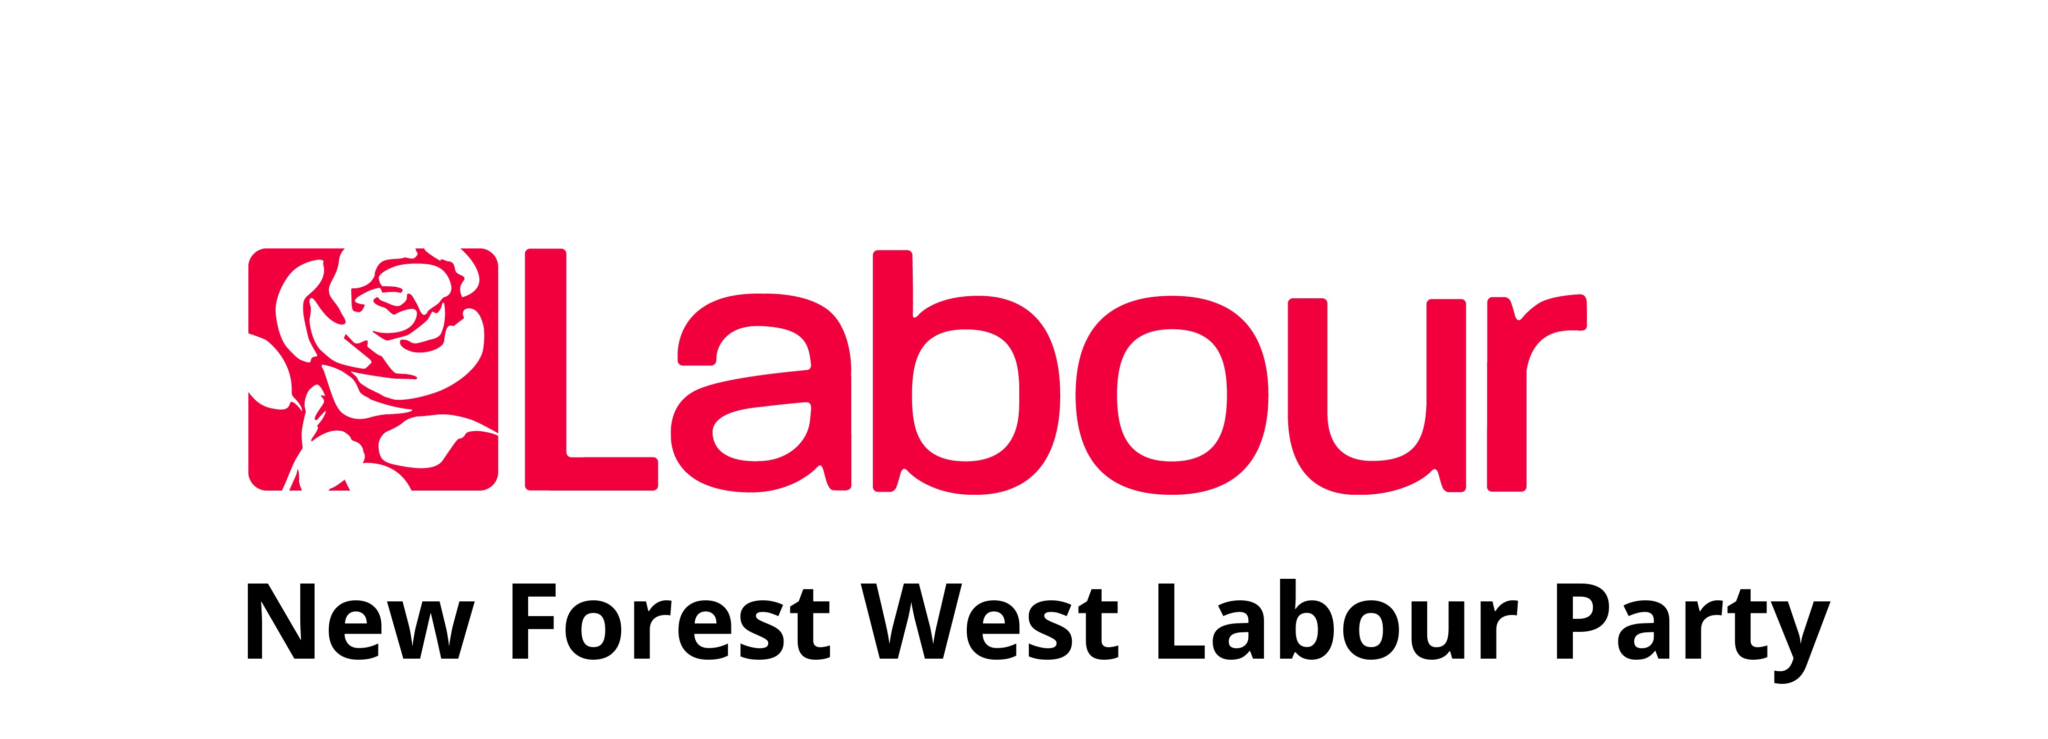 New Forest West Labour Party